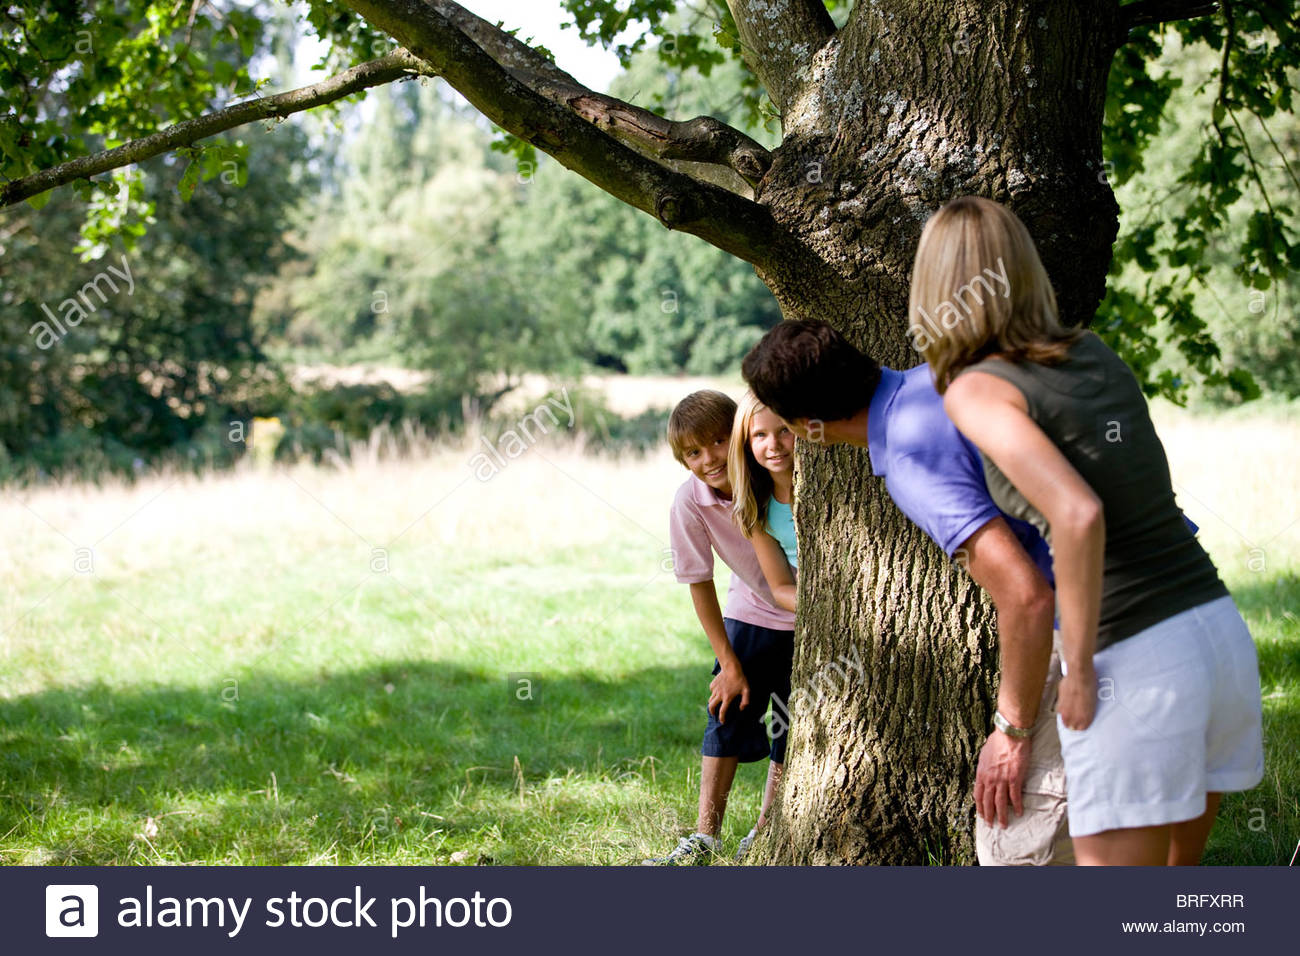 A family playing hide and seek - Stock Image